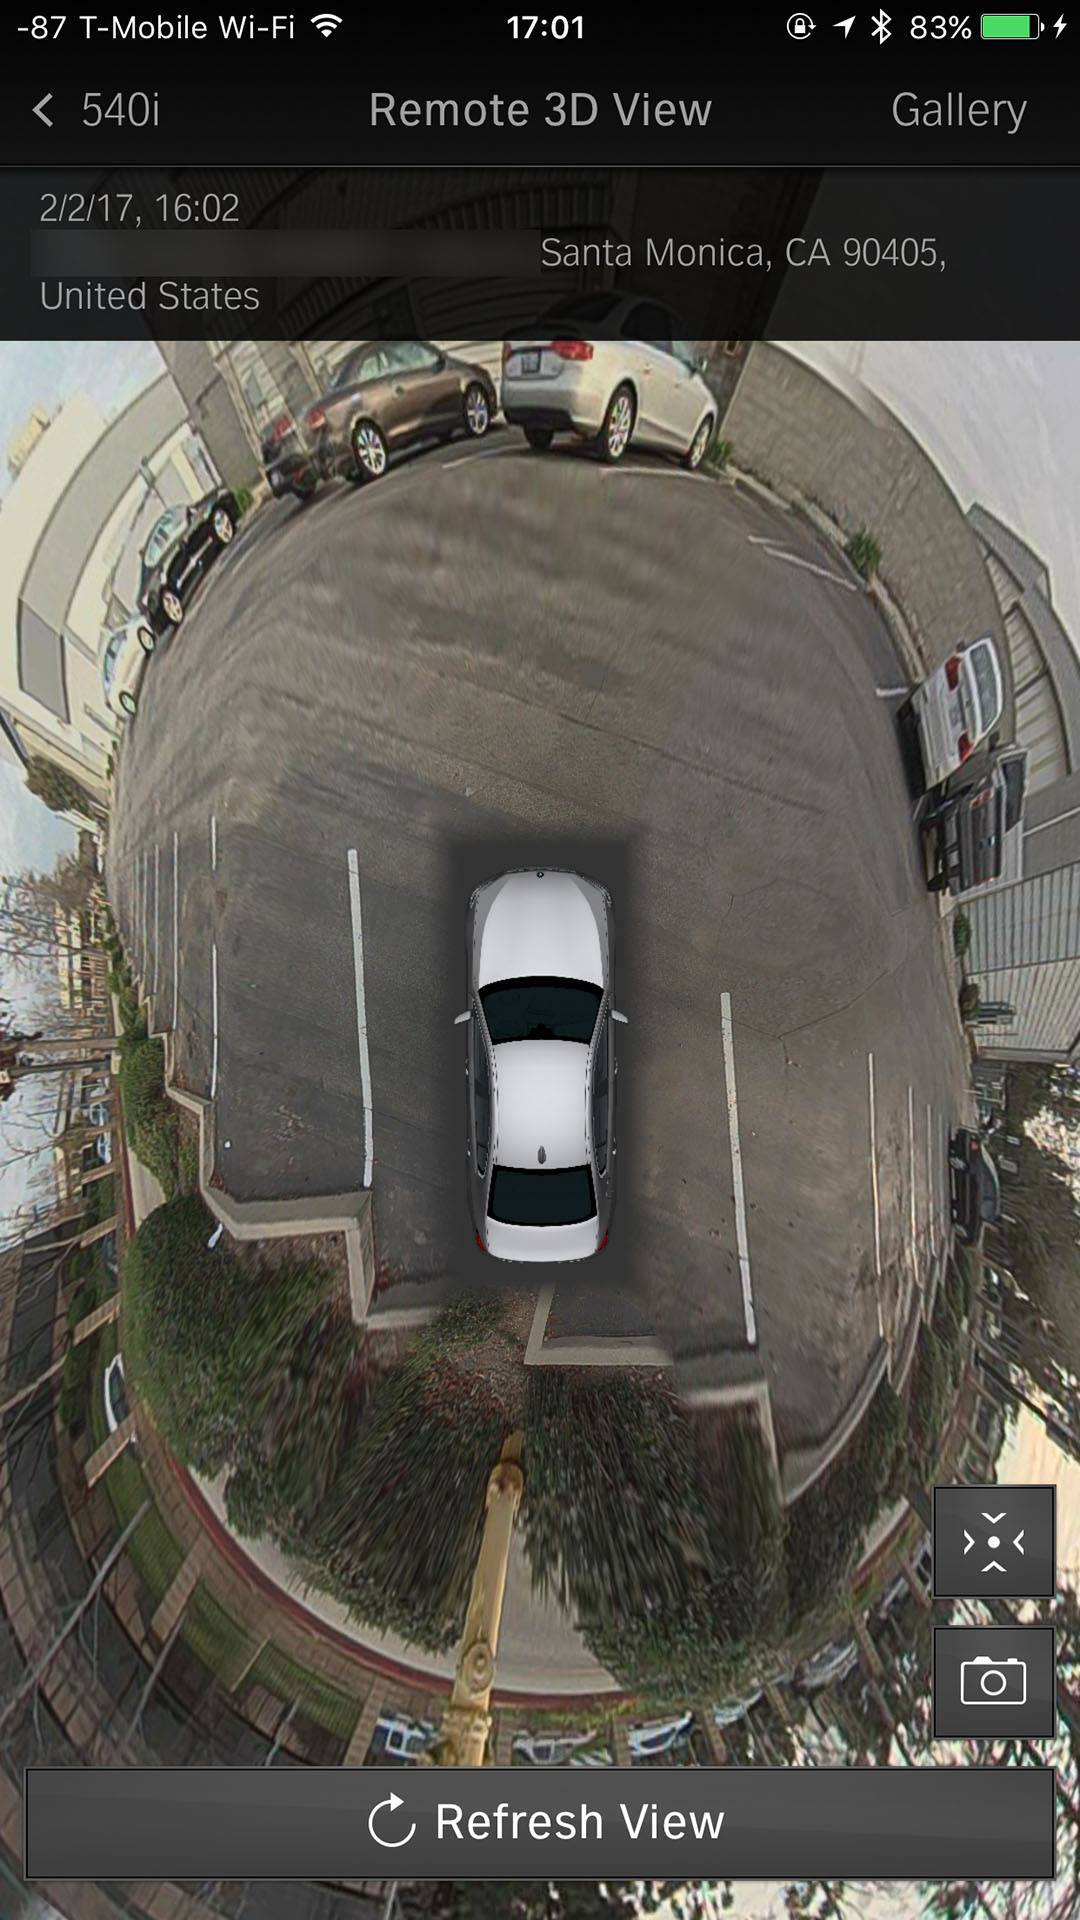 BMW新型5シリーズ対応Remote 3D Viewサポート(BMW Connectedアプリ)が開始!!360度画像が凄い^^